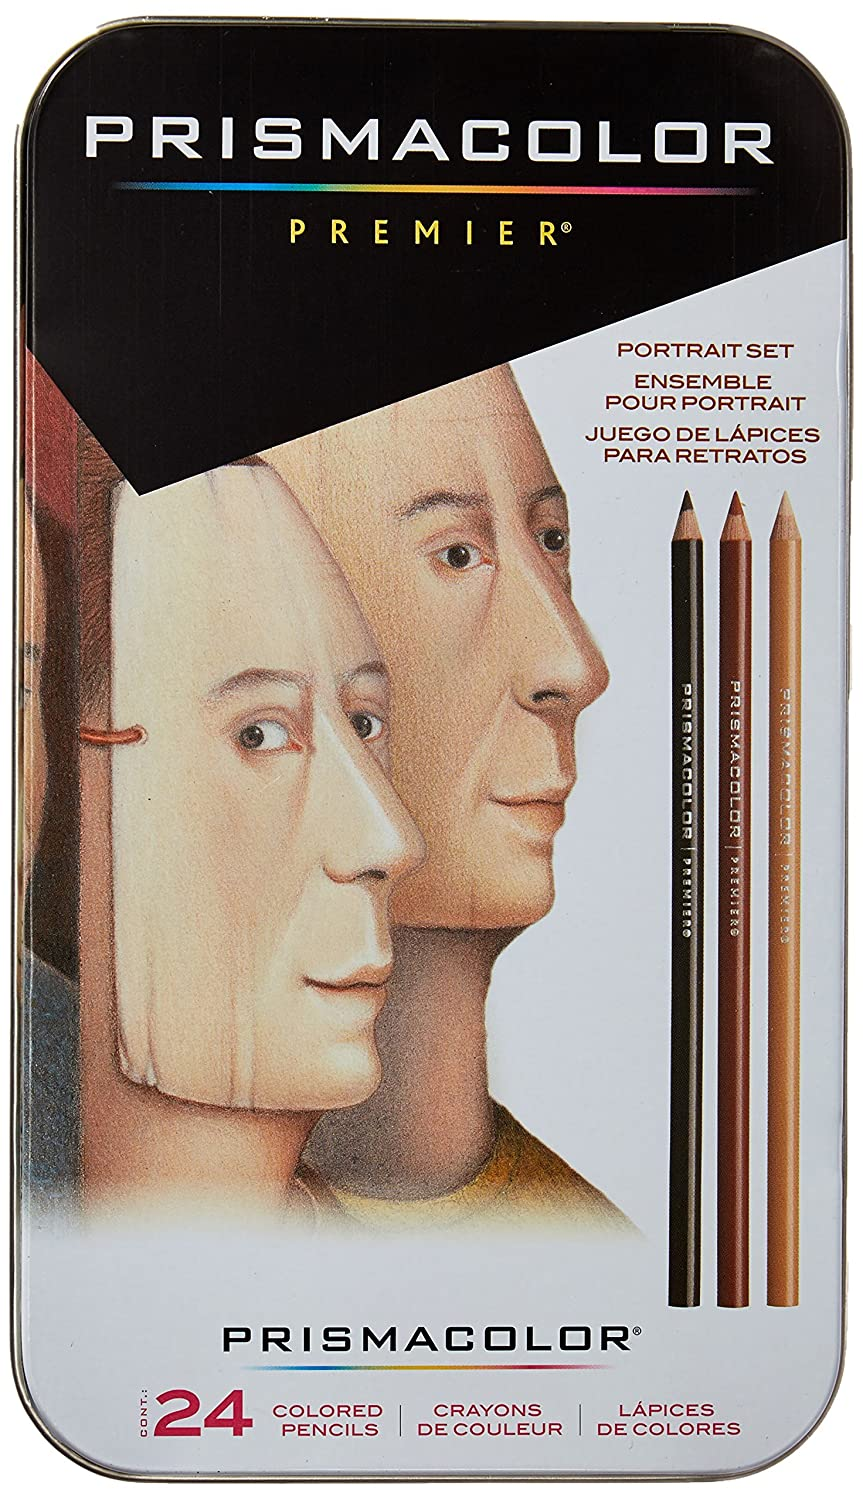 Sanford 25085R Prismacolor Premier Colored Pencils, Portrait Set, Soft Core, 24-Count